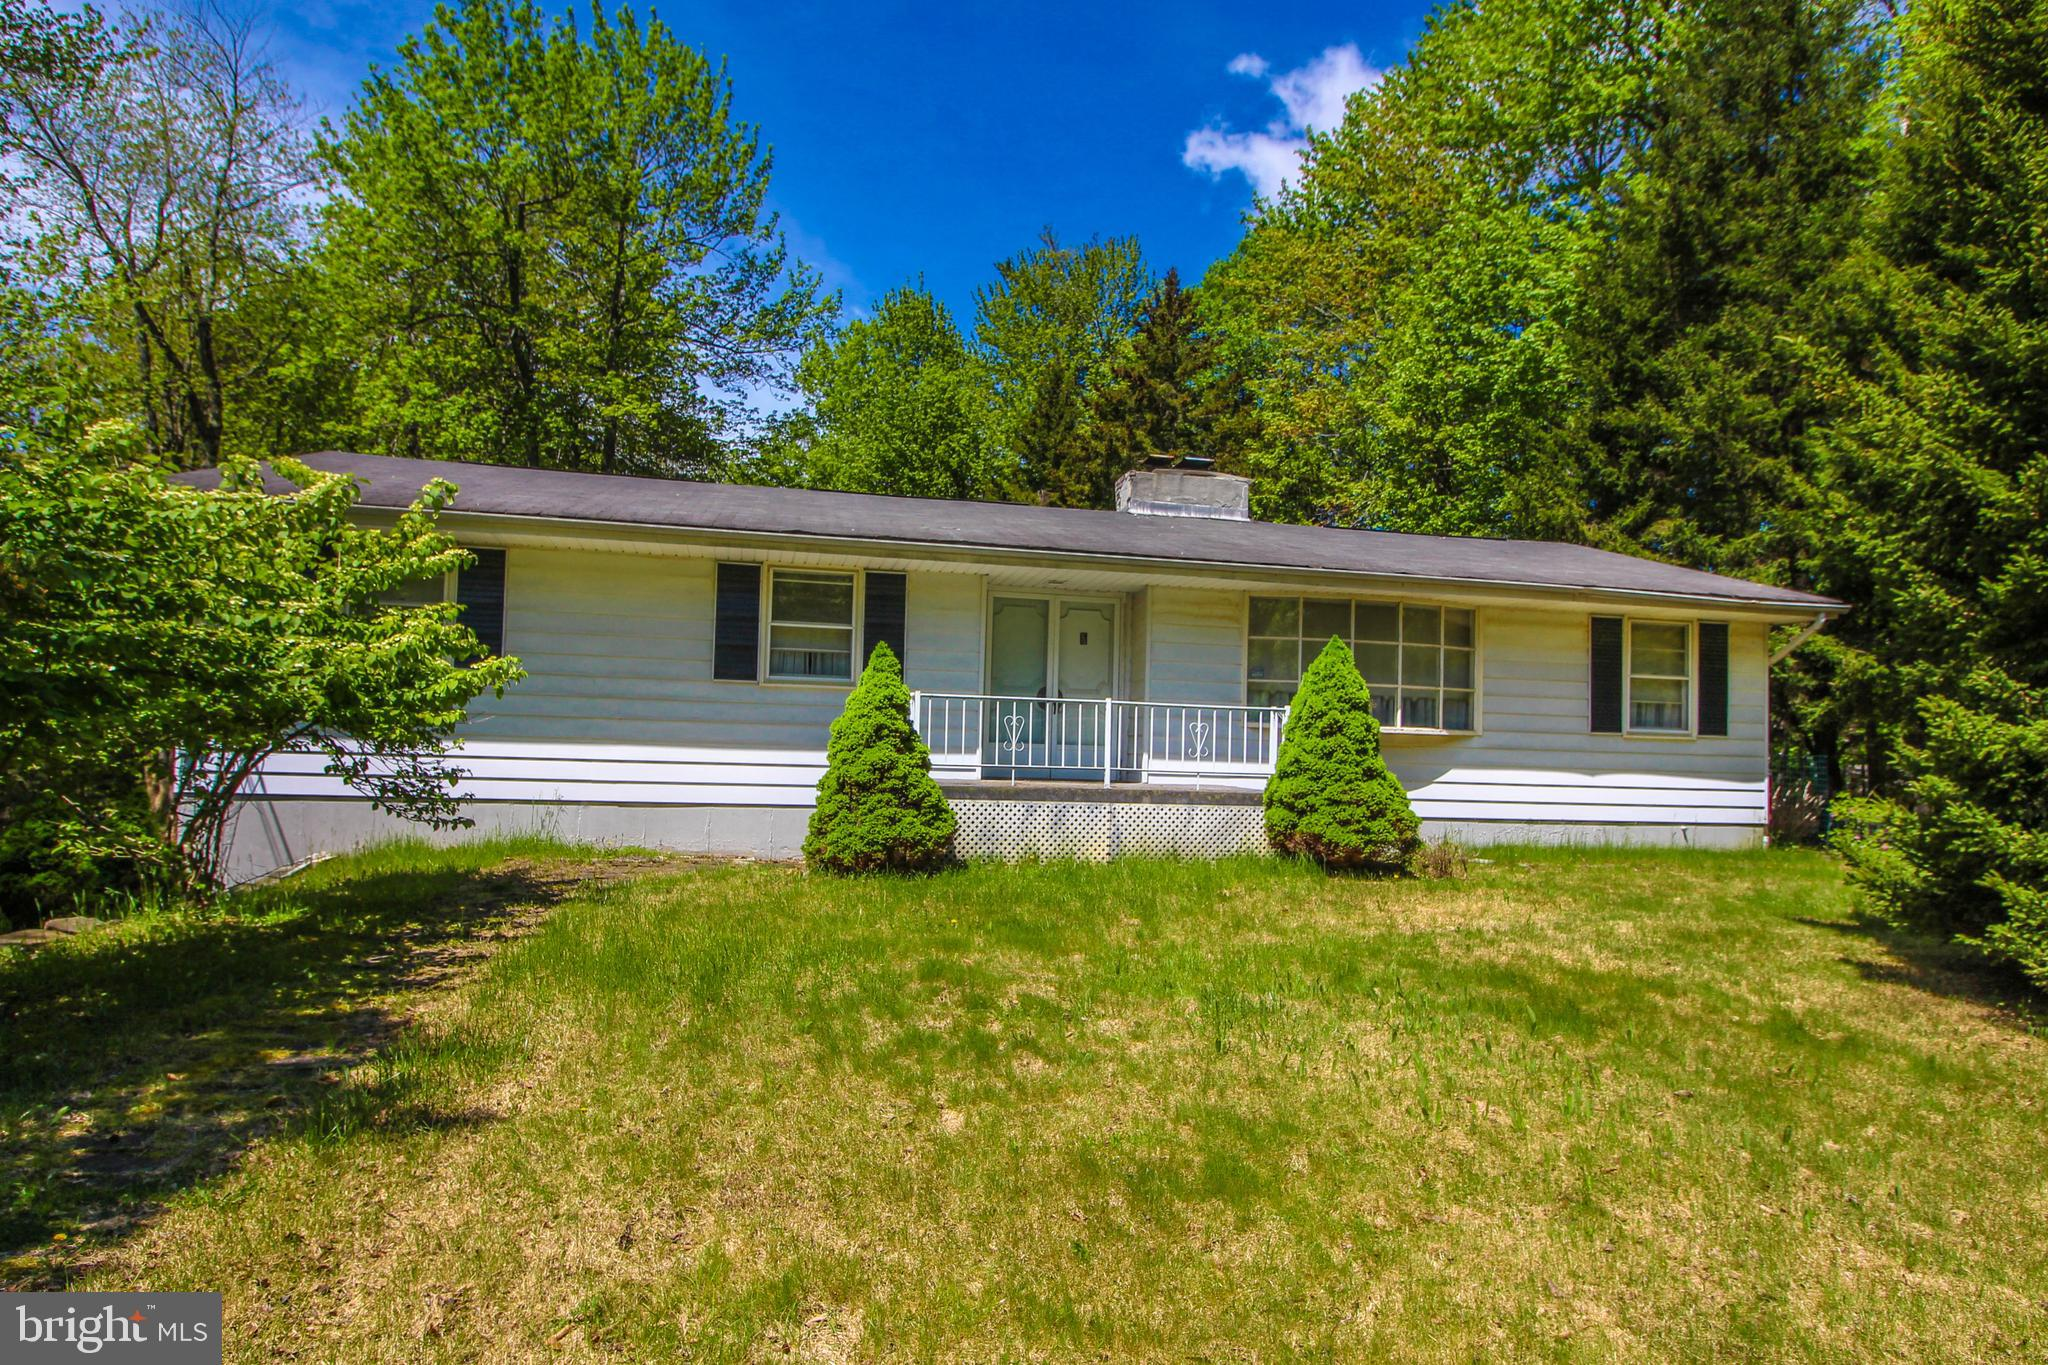 1131 CHICKADEE DRIVE, POCONO SUMMIT, PA 18346